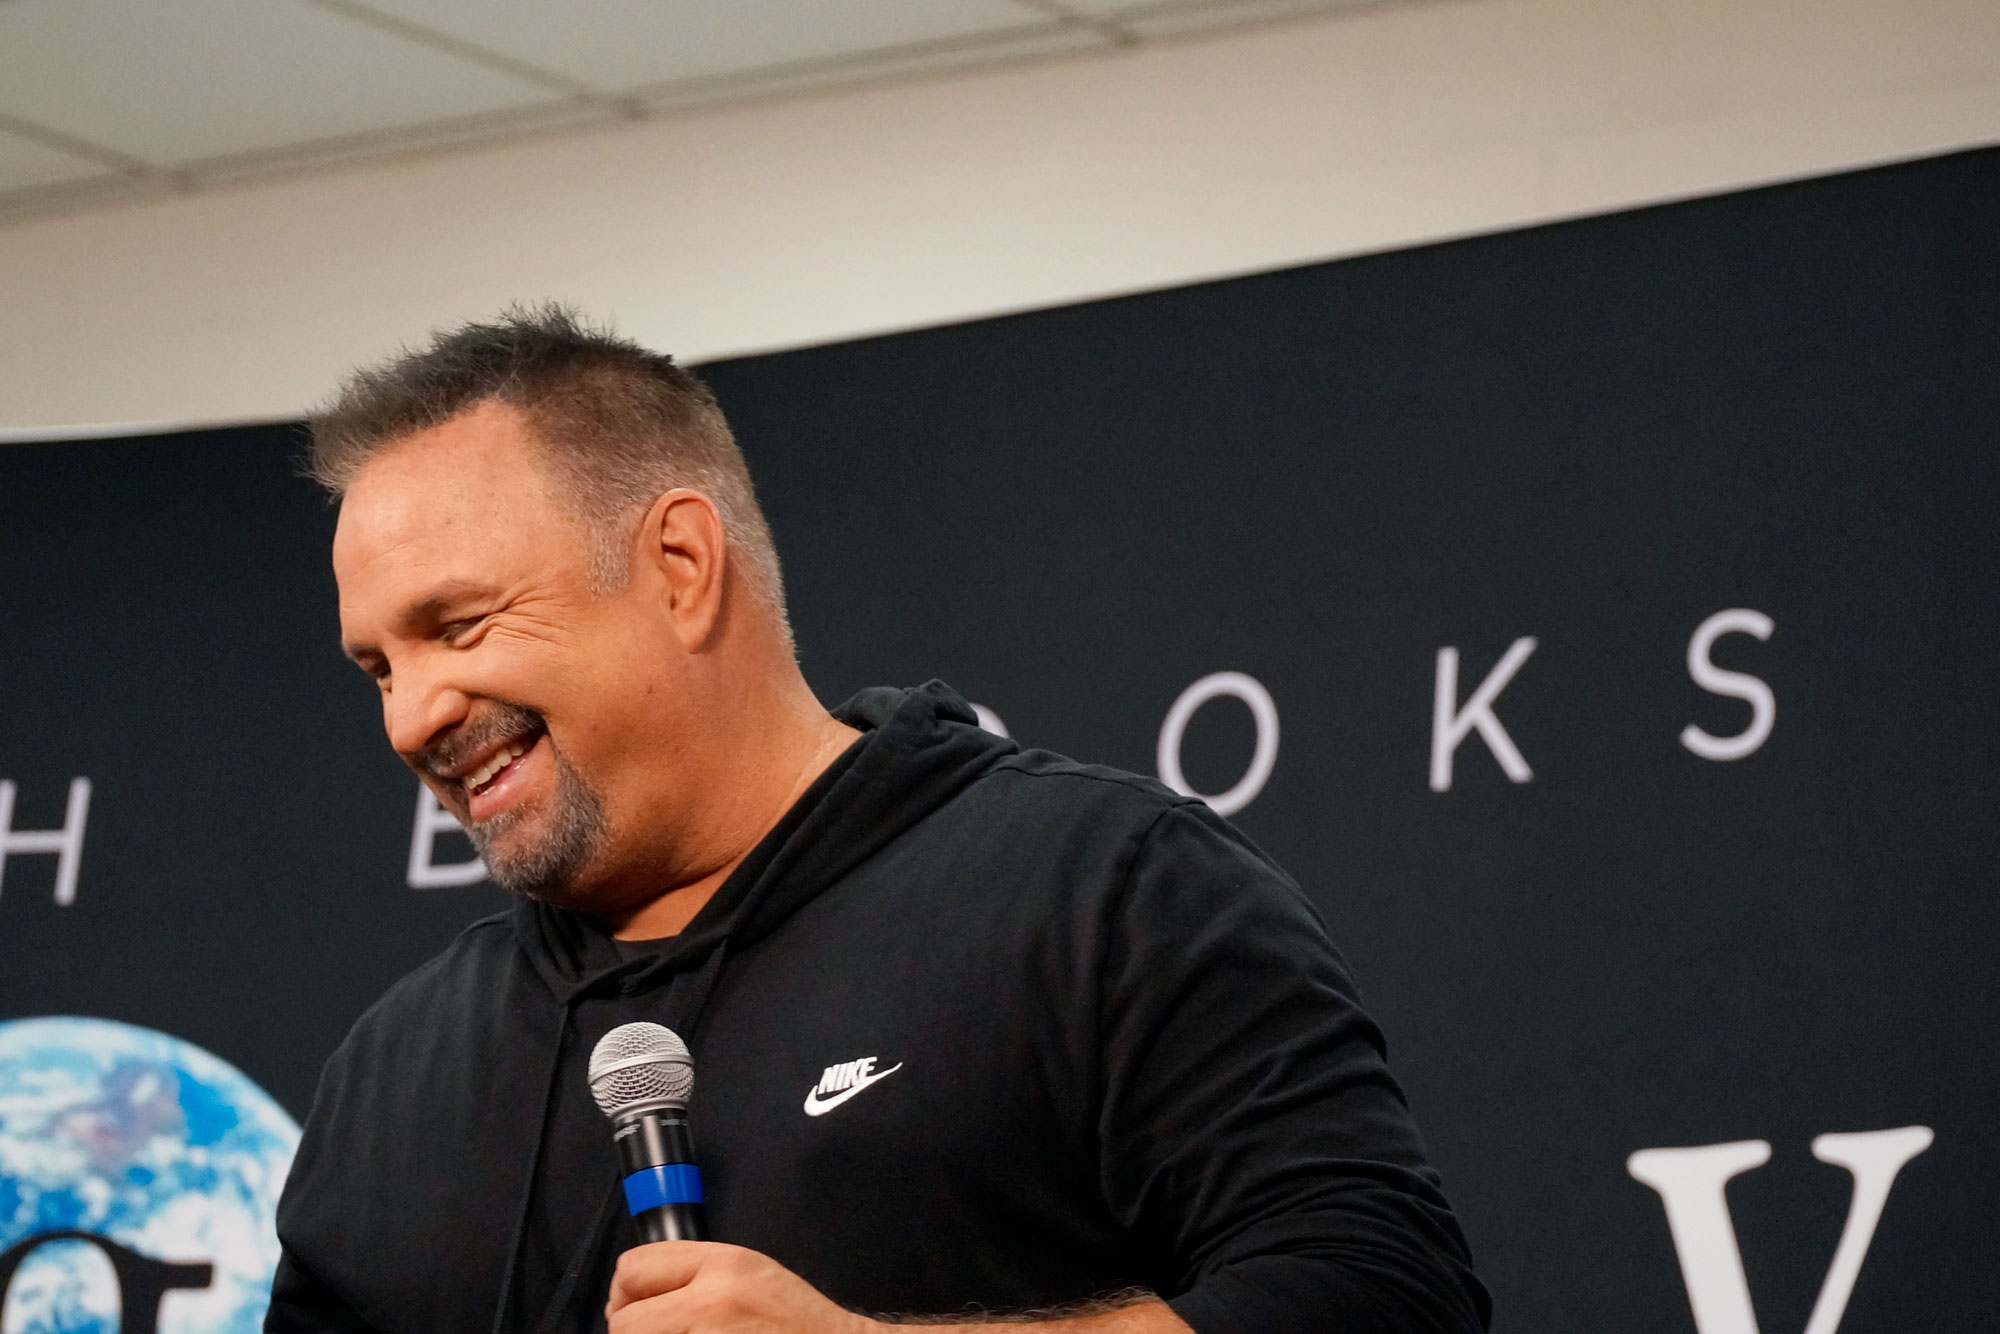 <p>Garth Brooks gives a press conference at Broncos Stadium at Mile High in Denver on June 7, 2019.</p>